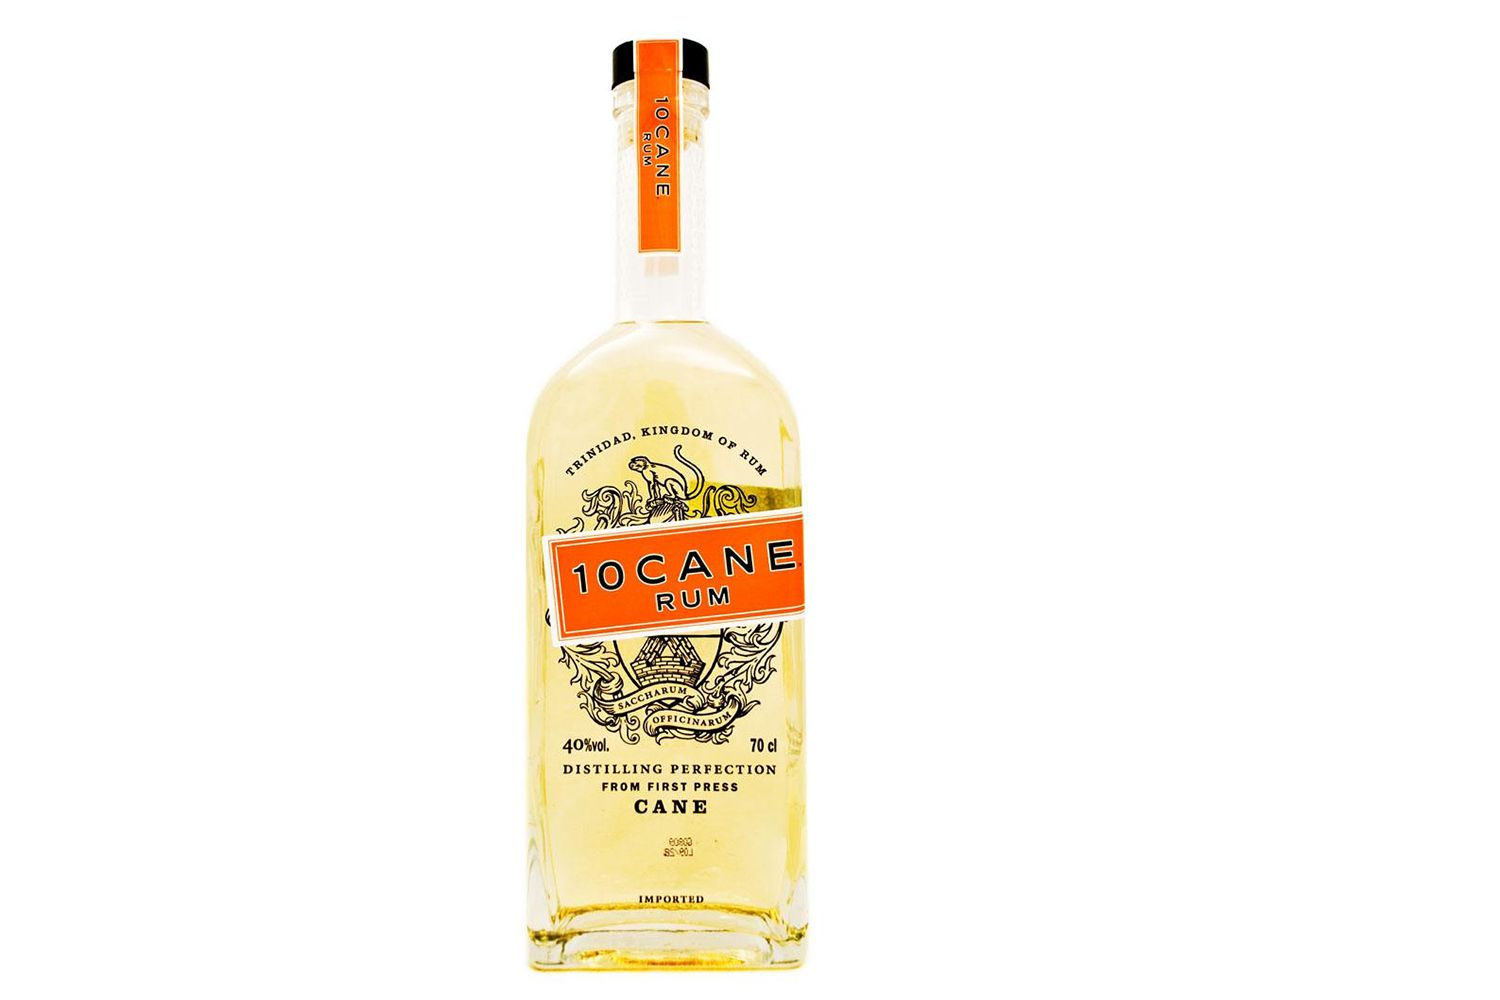 Review of the acclaimed 10 cane rum for Jj fish n chicken